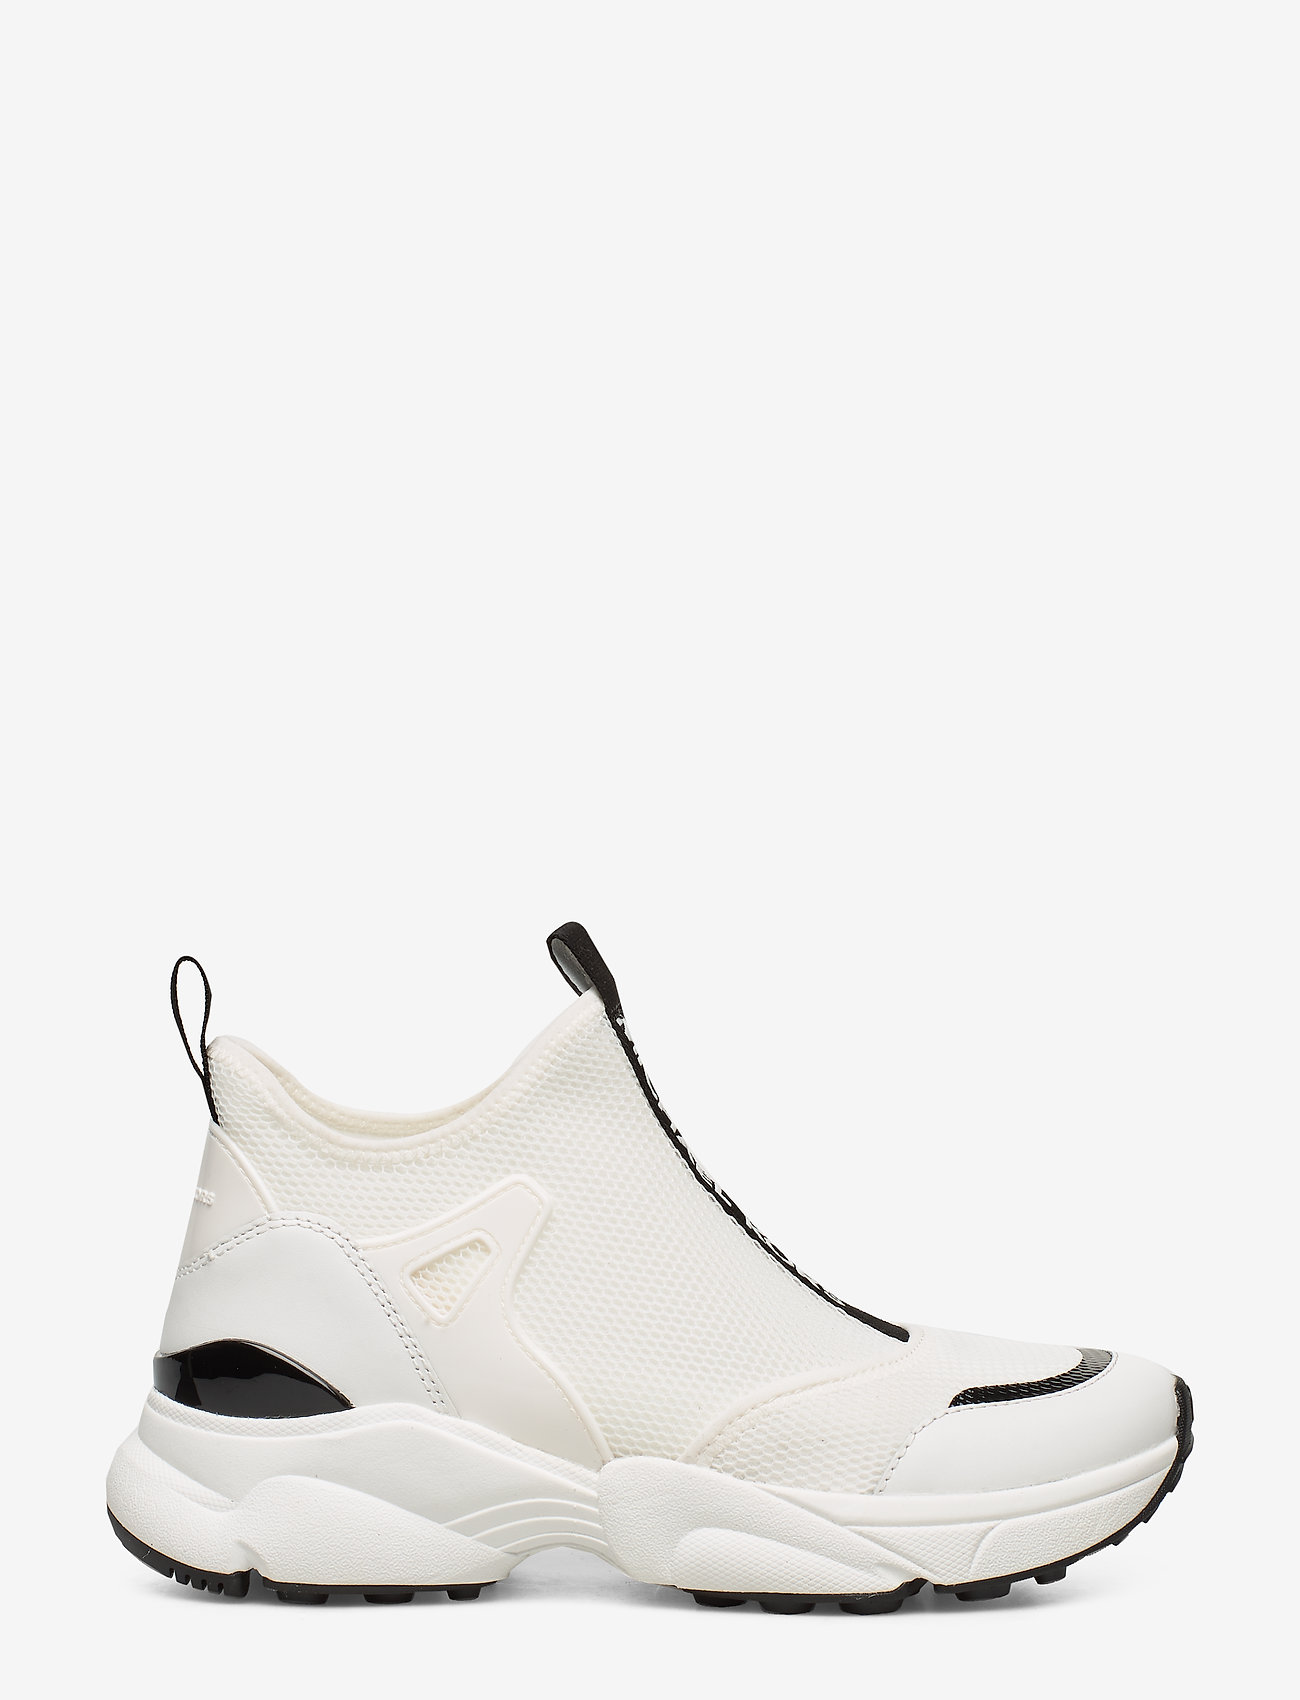 Michael Kors Shoes Willow Slip On - Sneakers